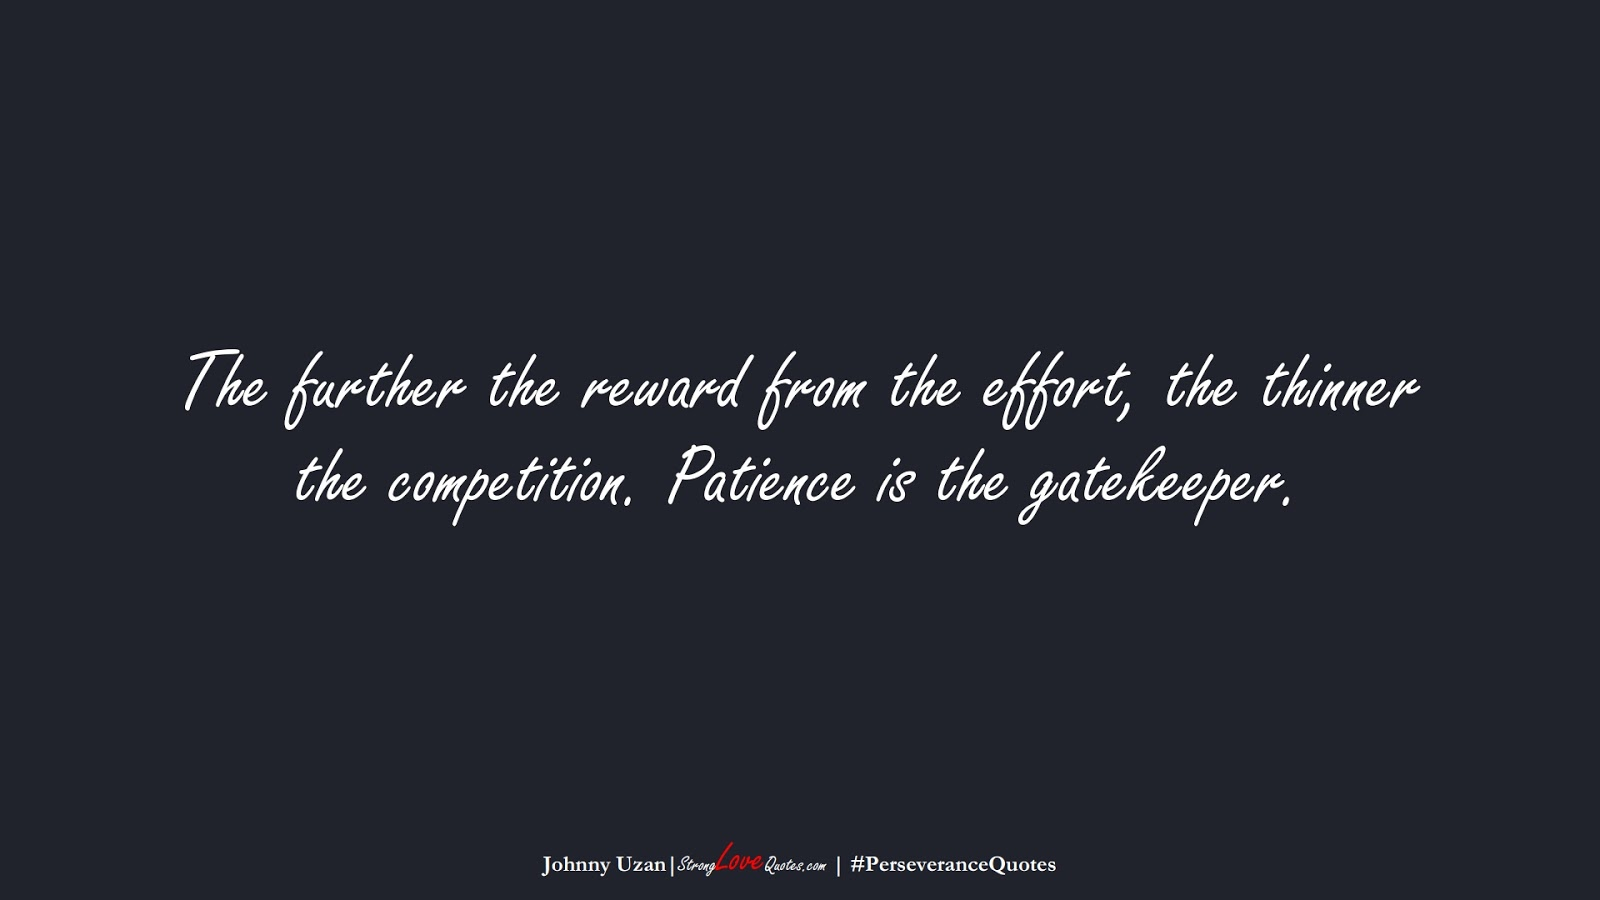 The further the reward from the effort, the thinner the competition. Patience is the gatekeeper. (Johnny Uzan);  #PerseveranceQuotes